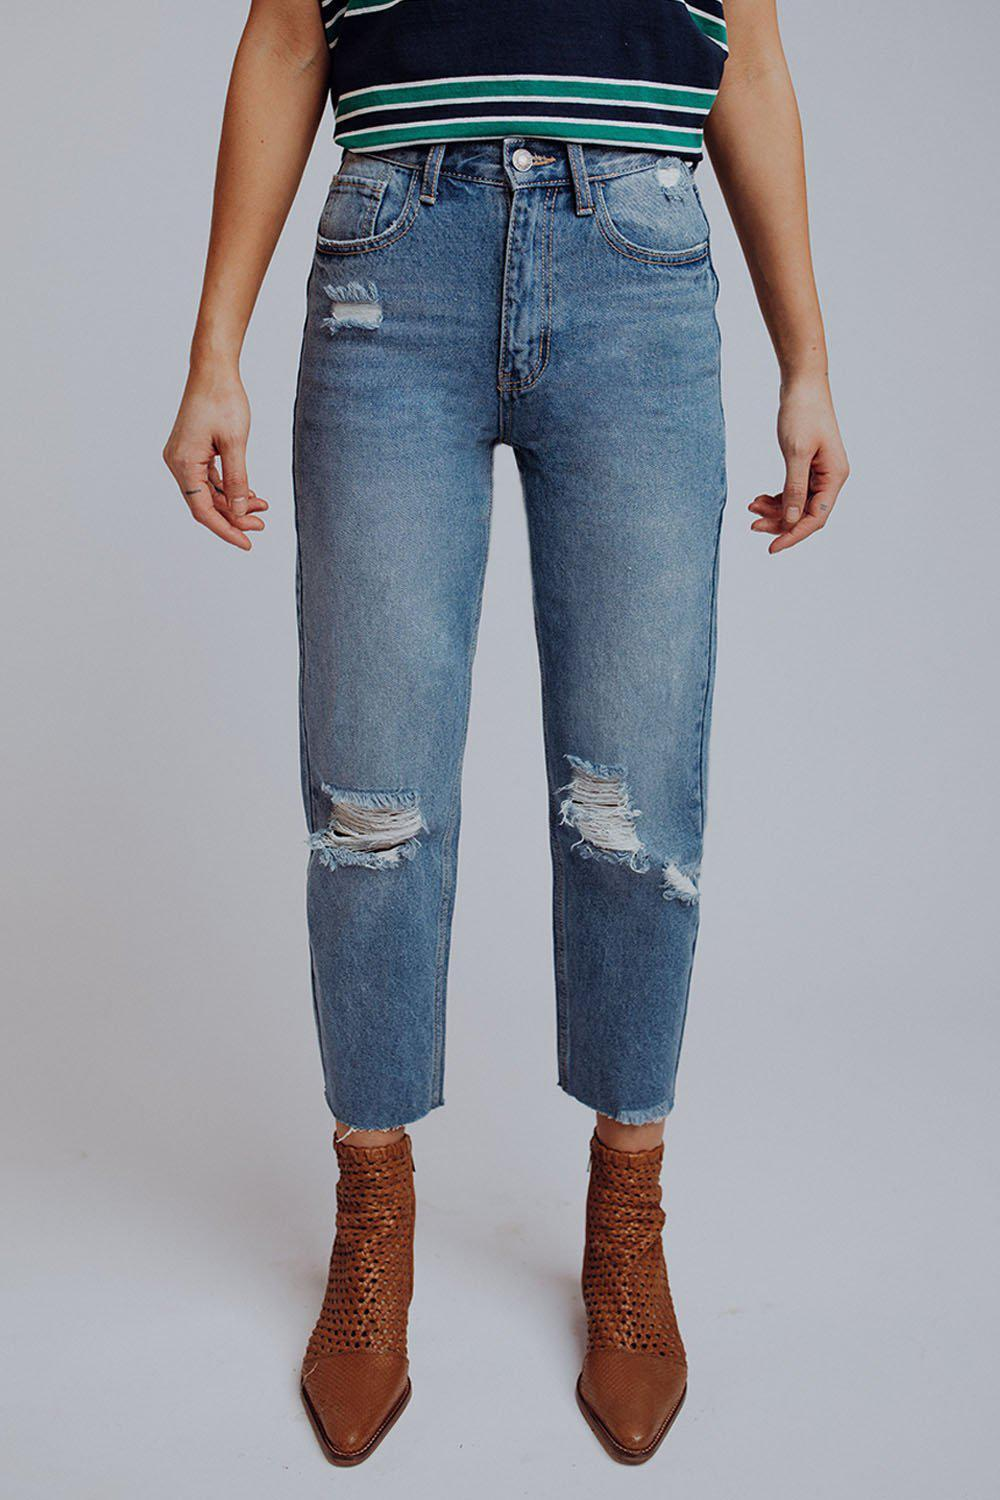 best_seller, Emerald Isle High-Rise Crop Jeans in Medium Wash Denim - FINAL SALE, Bottom, women's clothing, dresses, skirts, coats, jackets, shoes, boots, tops, tee shirts, jeans, free people, levi's, rollas, jumpsuits, bottoms, tops, sweaters, pullovers, pants, shorts, sweats,.